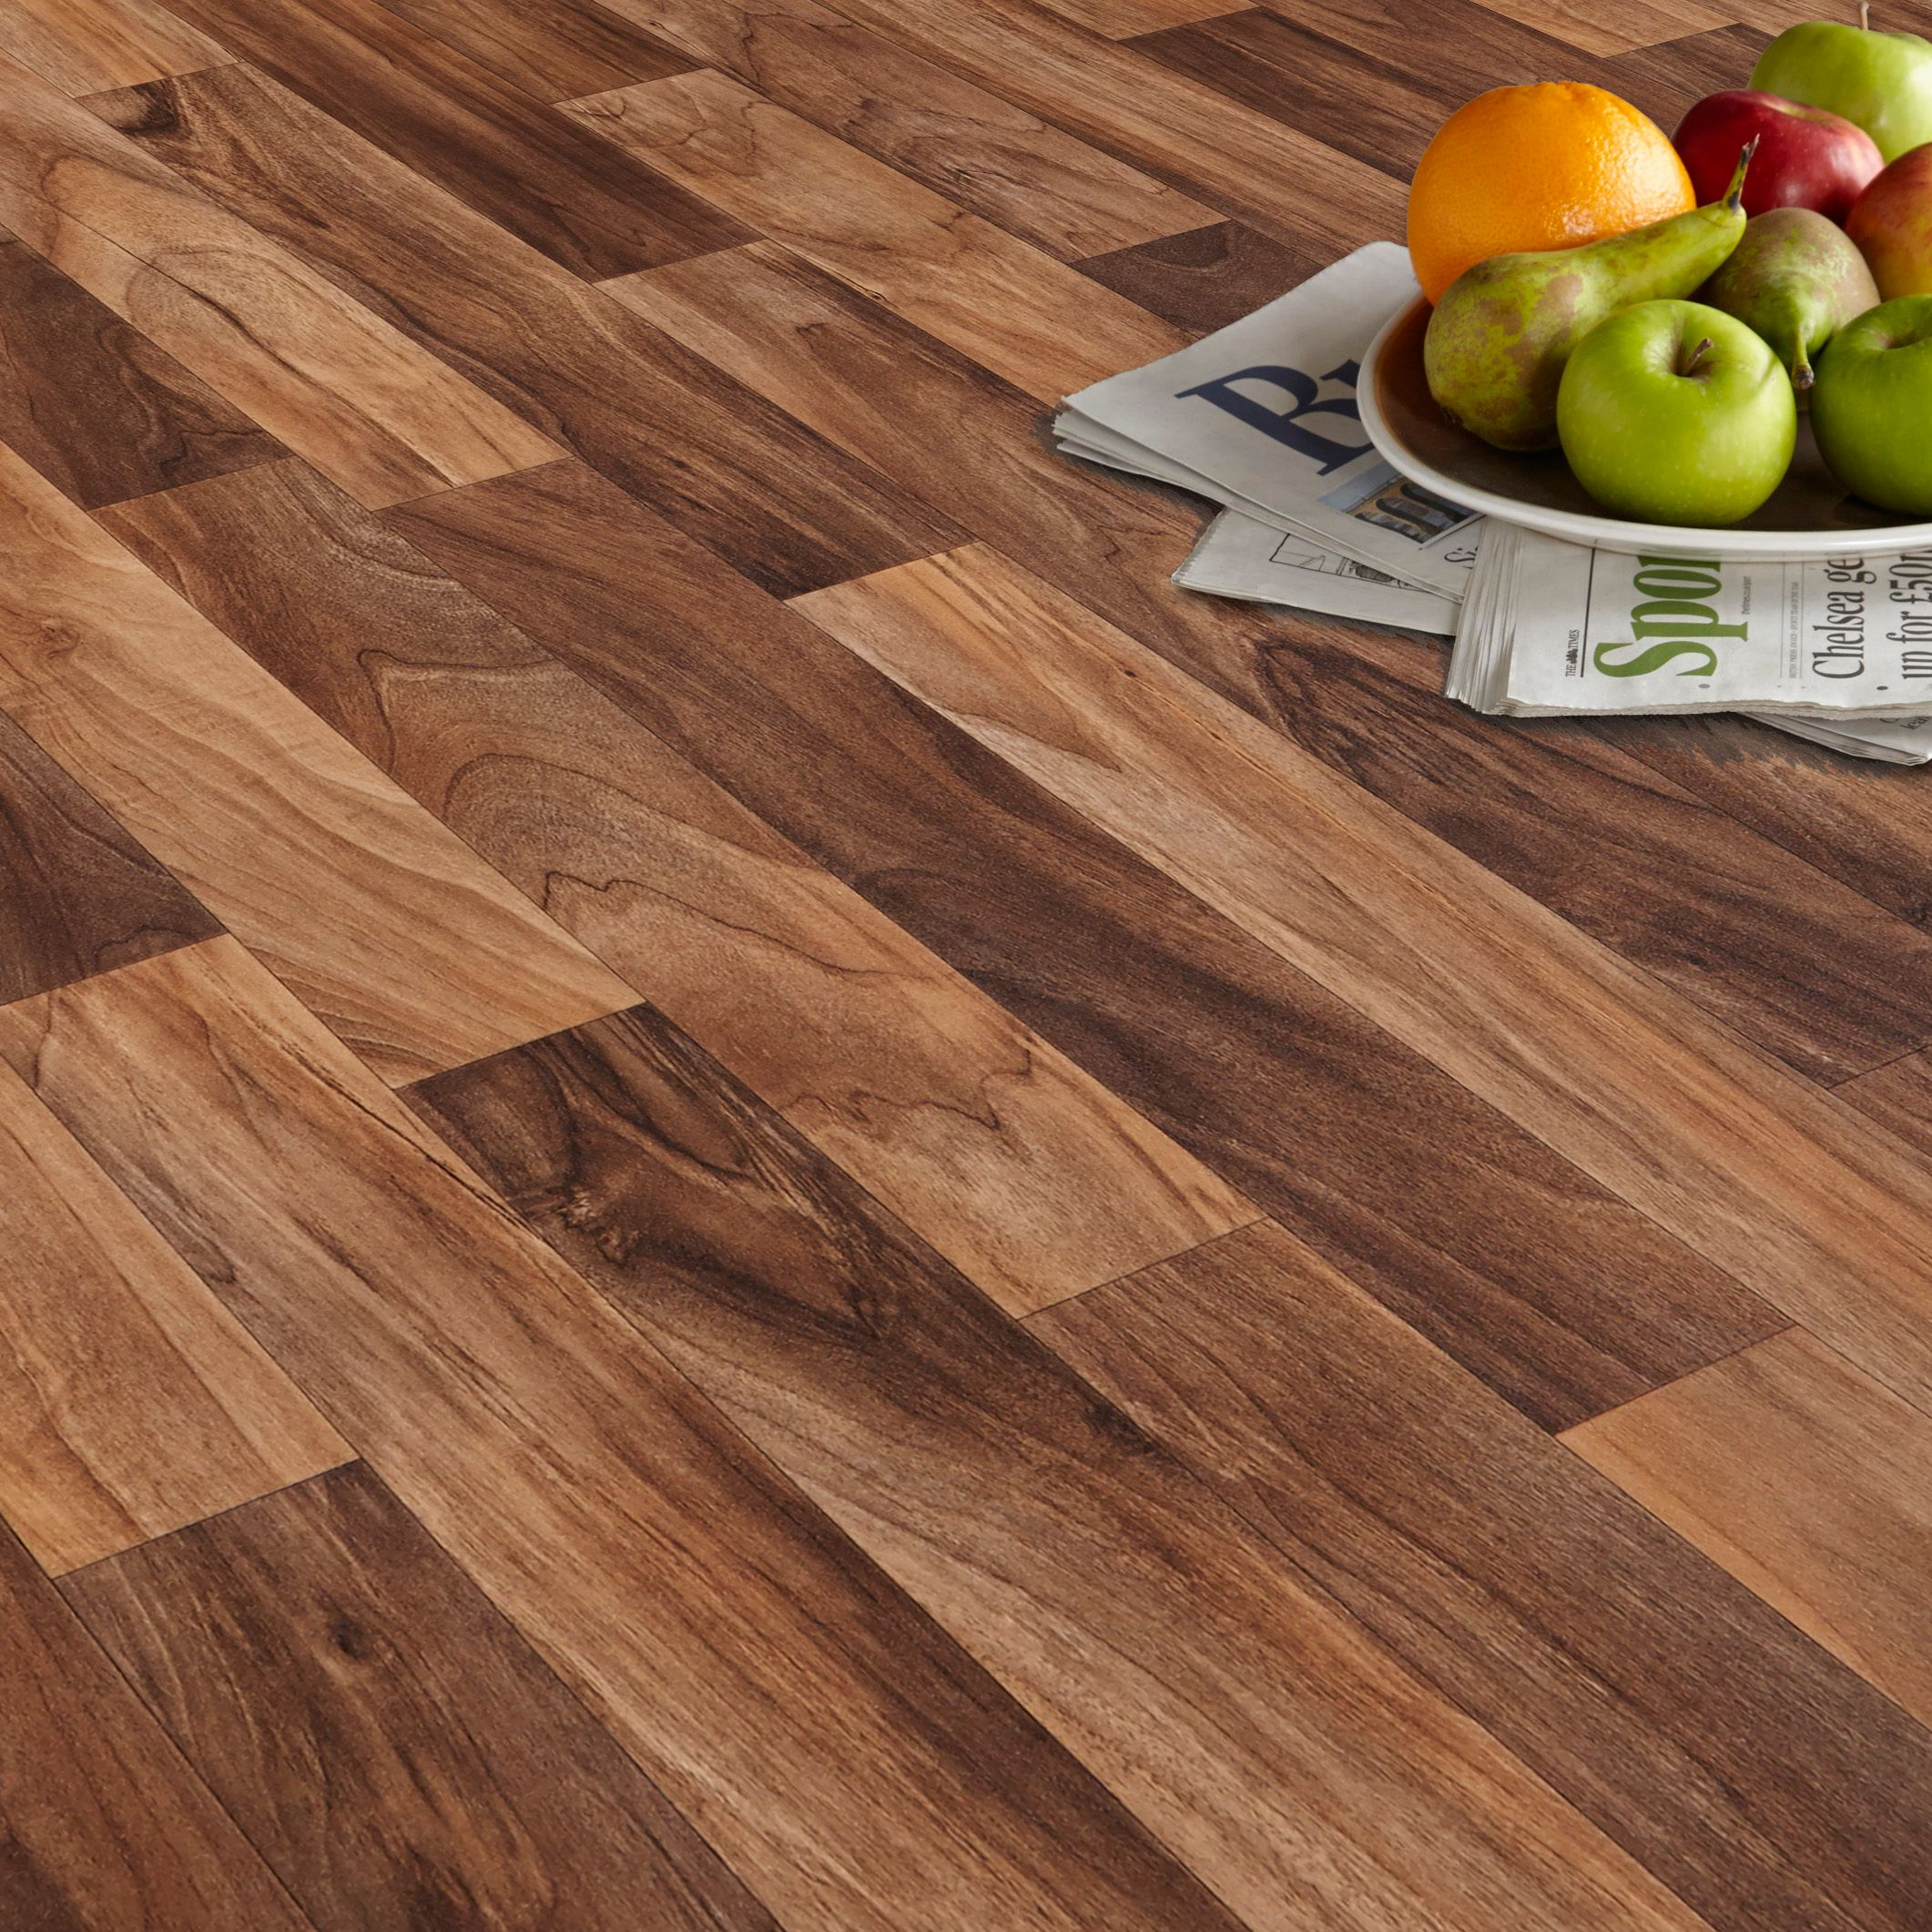 vinyl floor arezzo walnut effect matt vinyl flooring 6 m² | departments | diy at UDCYZJA